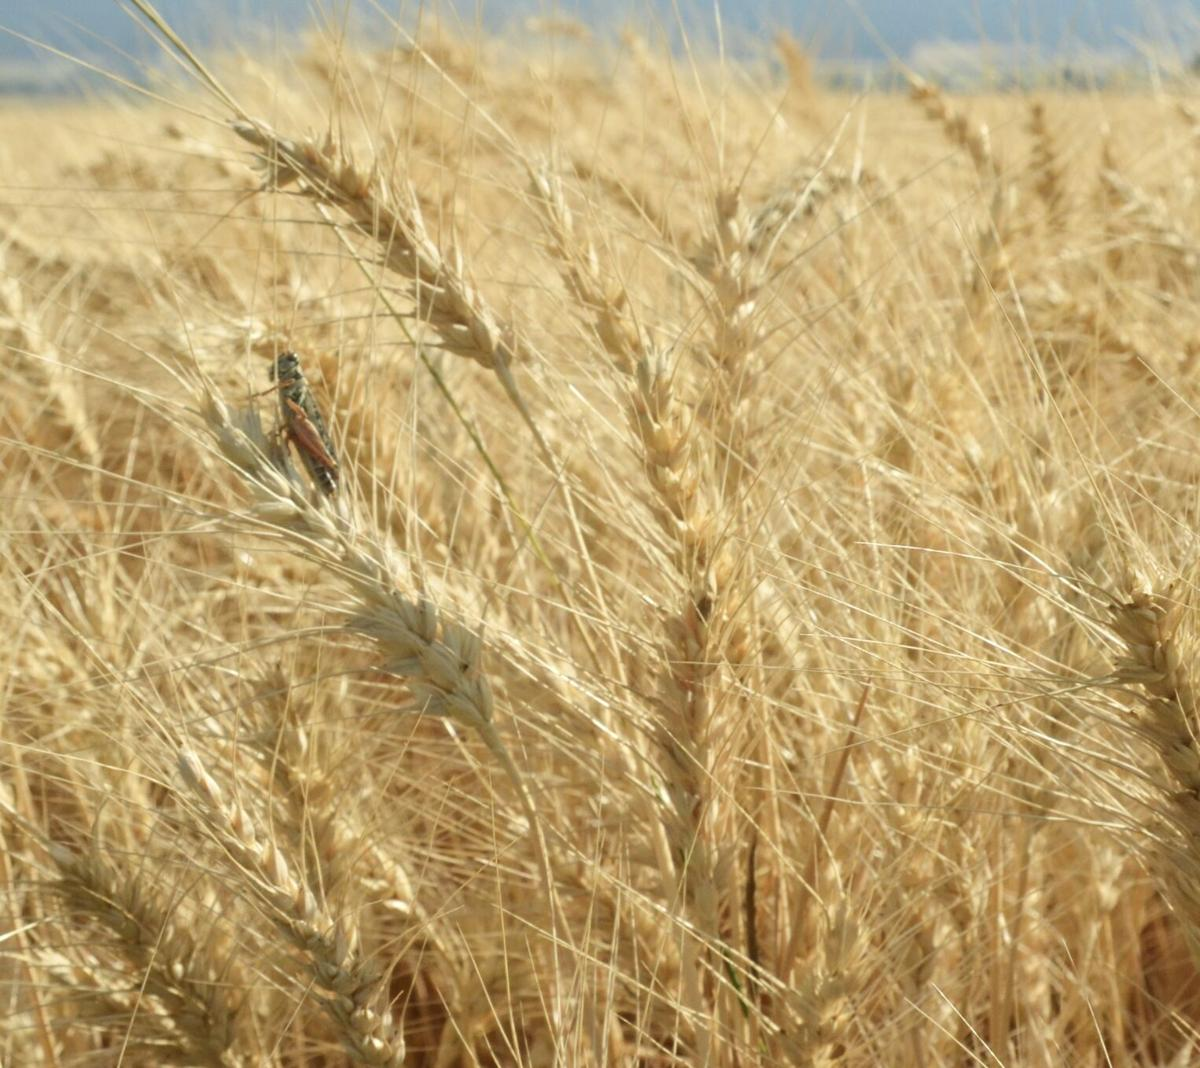 2wheat 2267 for 090920.jpg